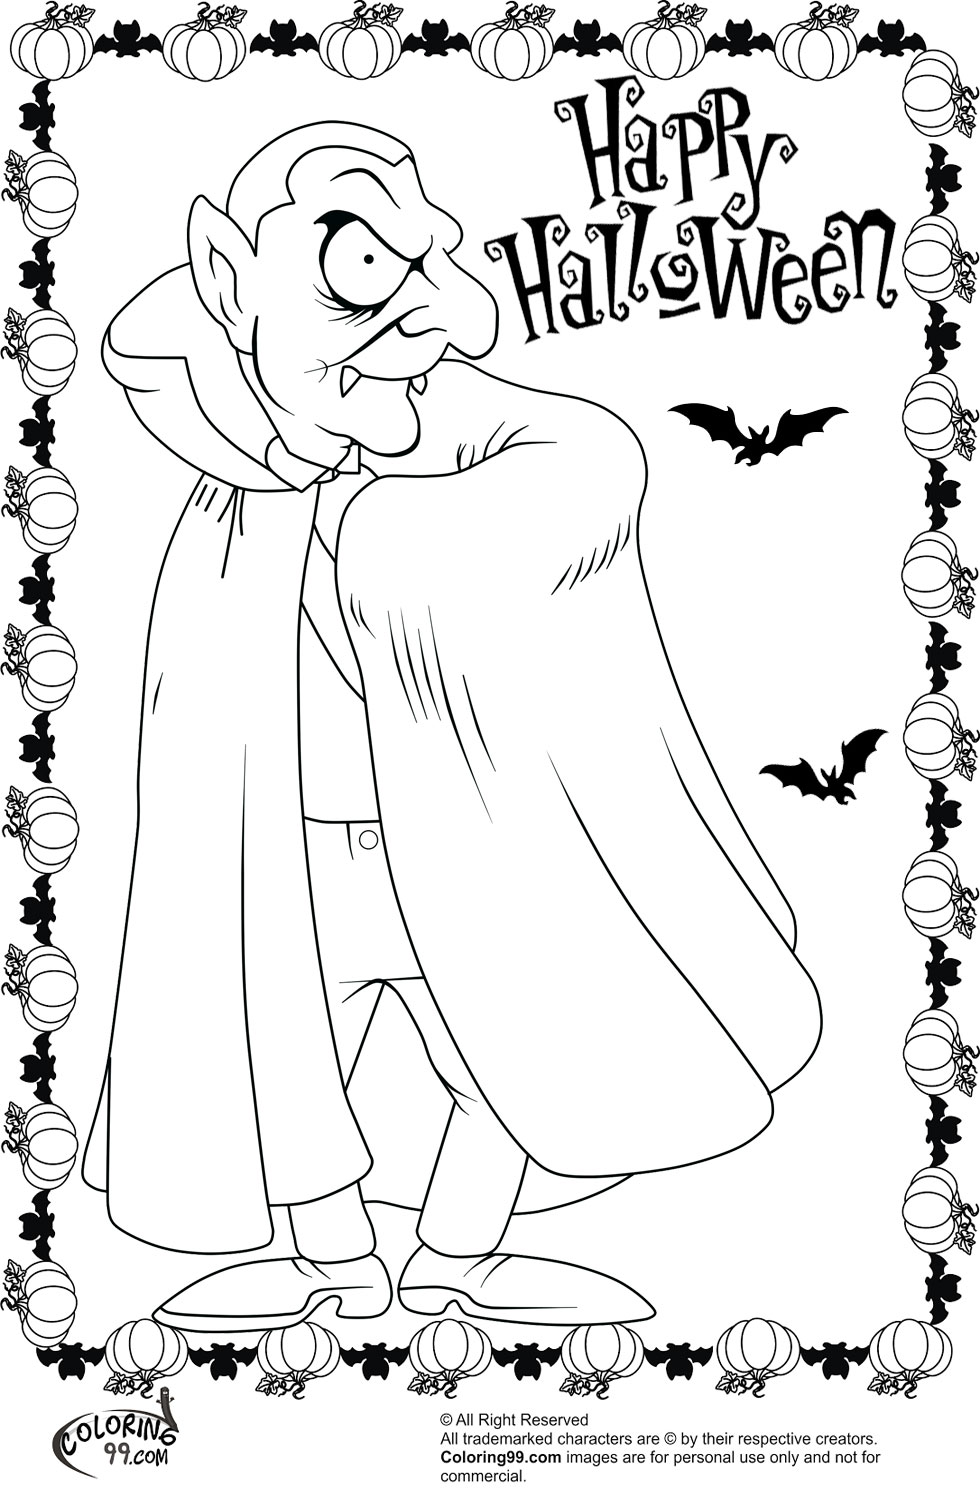 Halloween Scary Coloring Pages Scary Halloween Coloring Pages